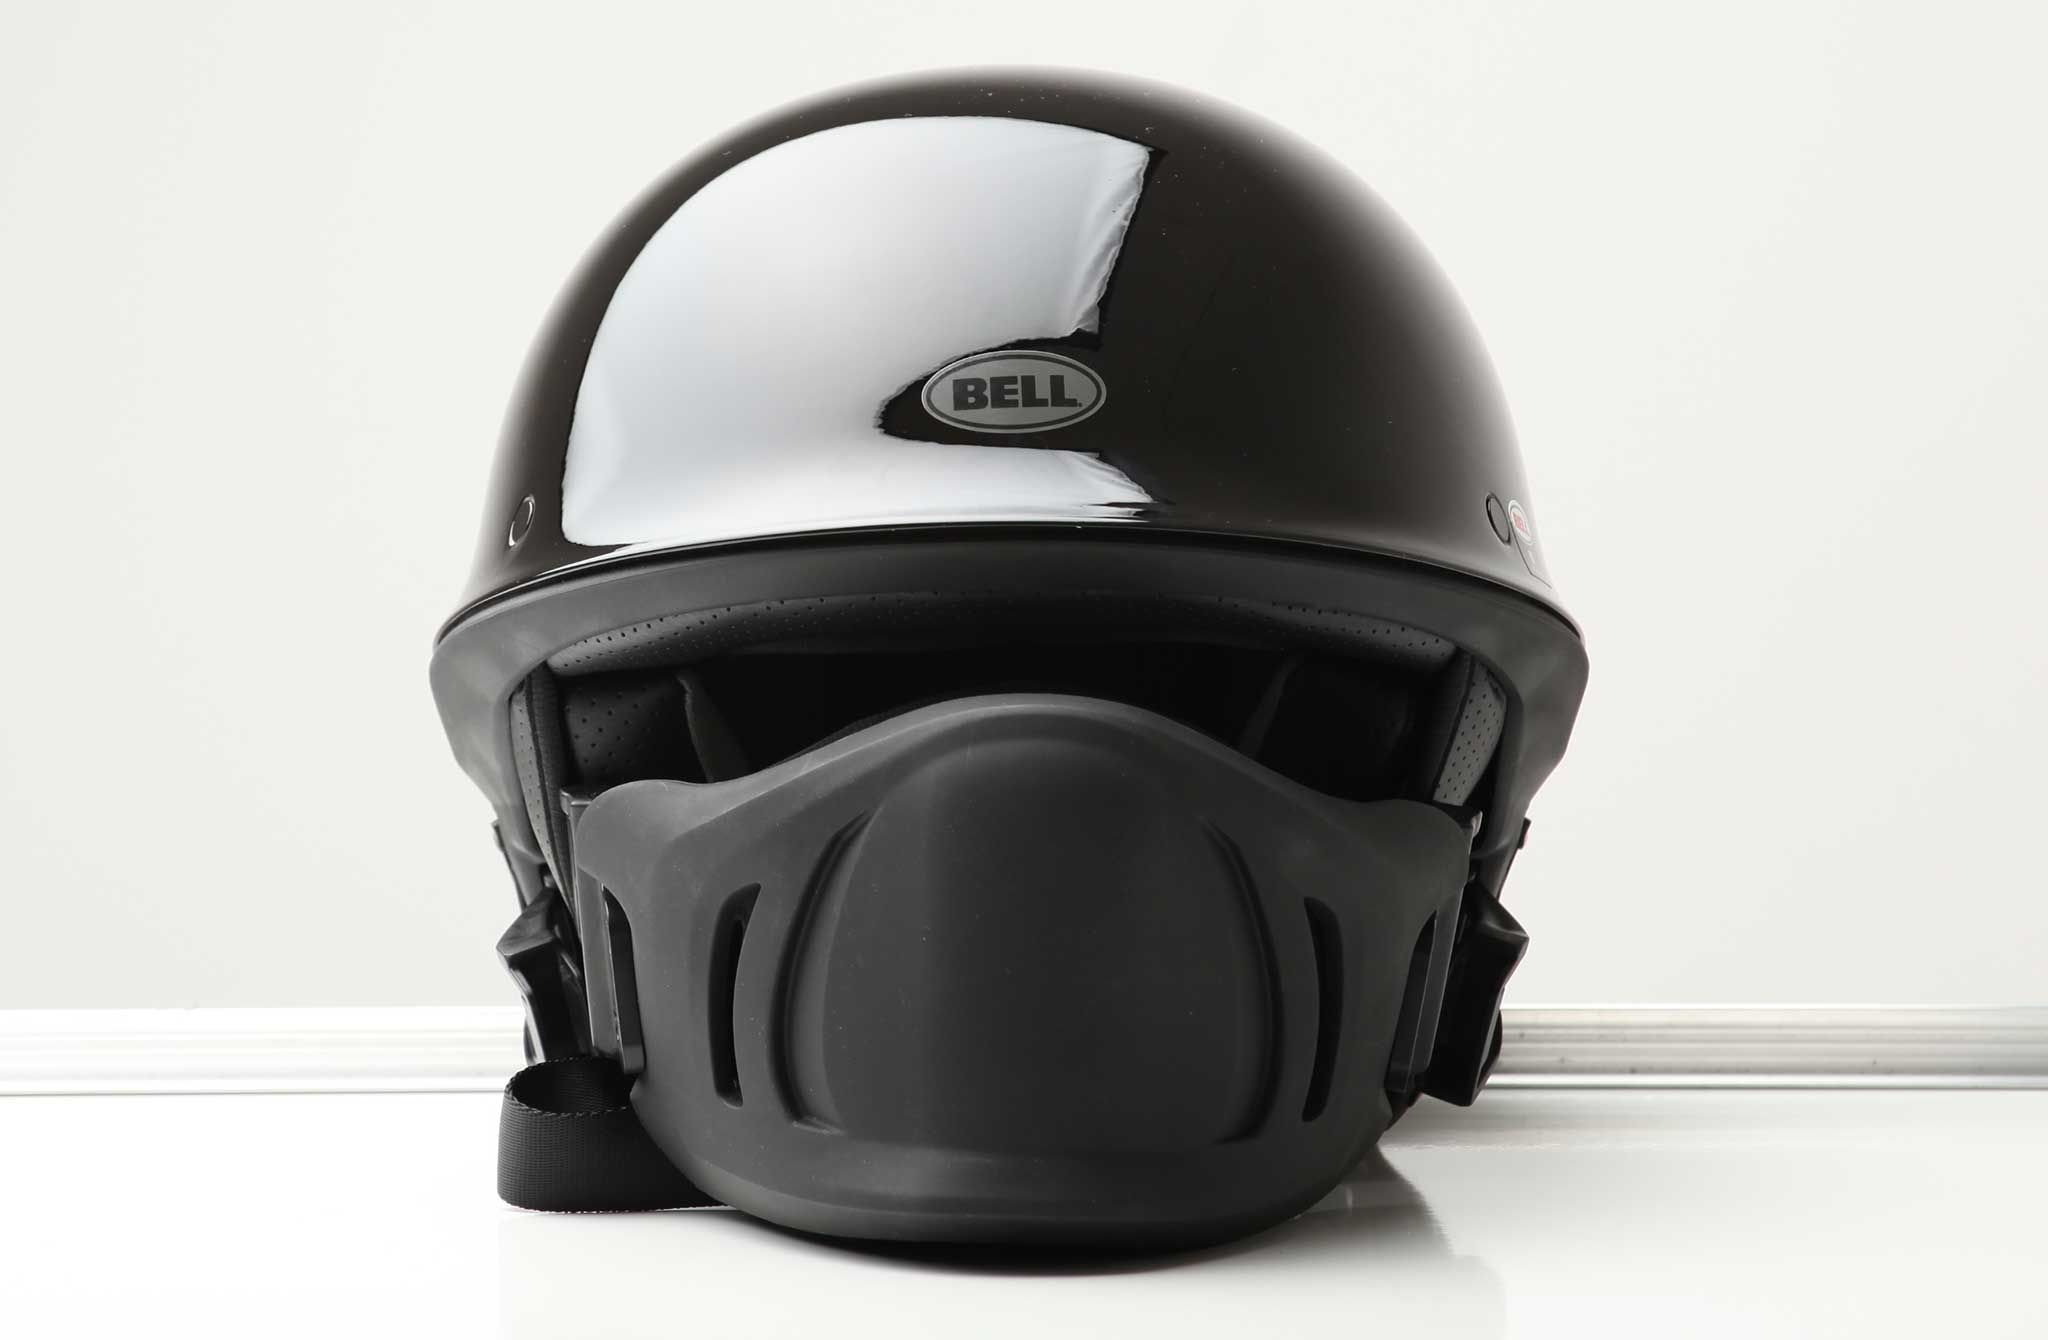 Motorcycle Helmets Dot >> Bell Motorcycle Helmets - Protecting You Since 1954